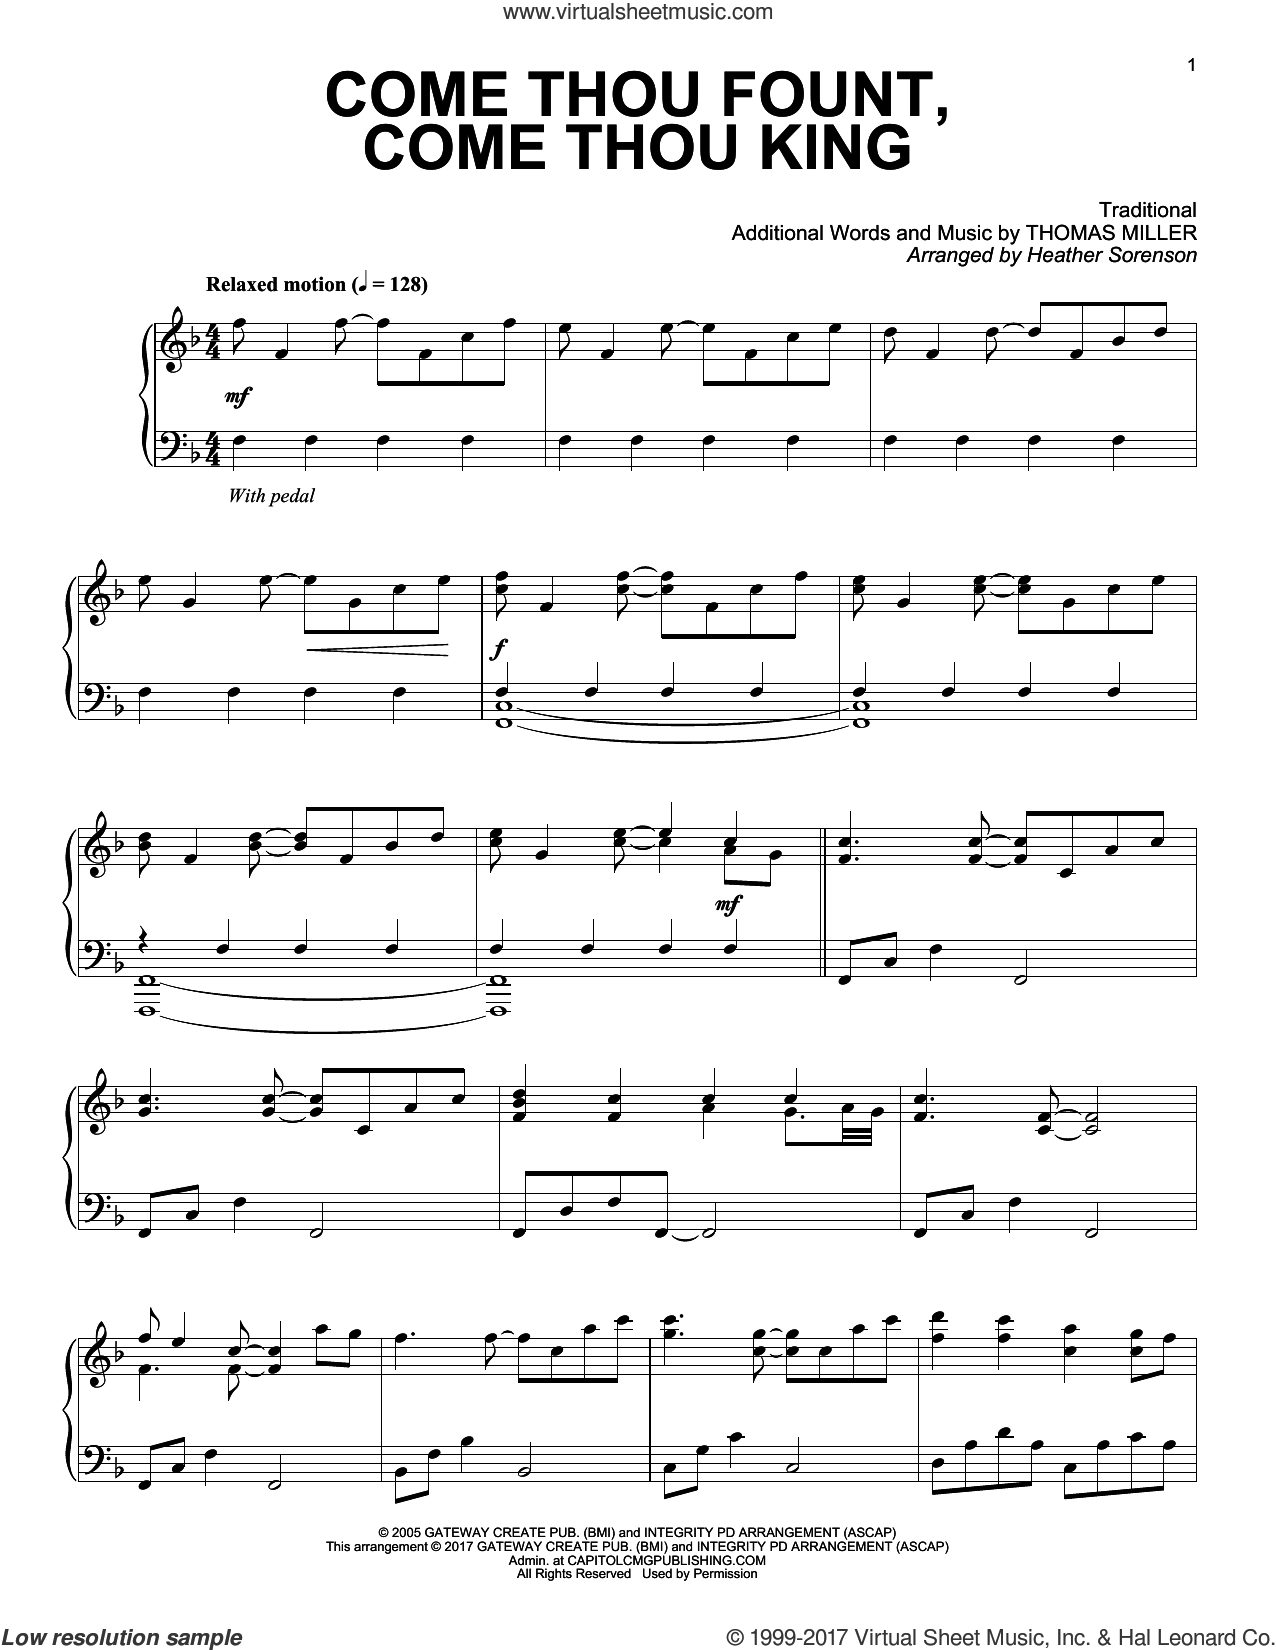 Come Thou Fount, Come Thou King sheet music for piano solo  and Thomas Miller. Score Image Preview.